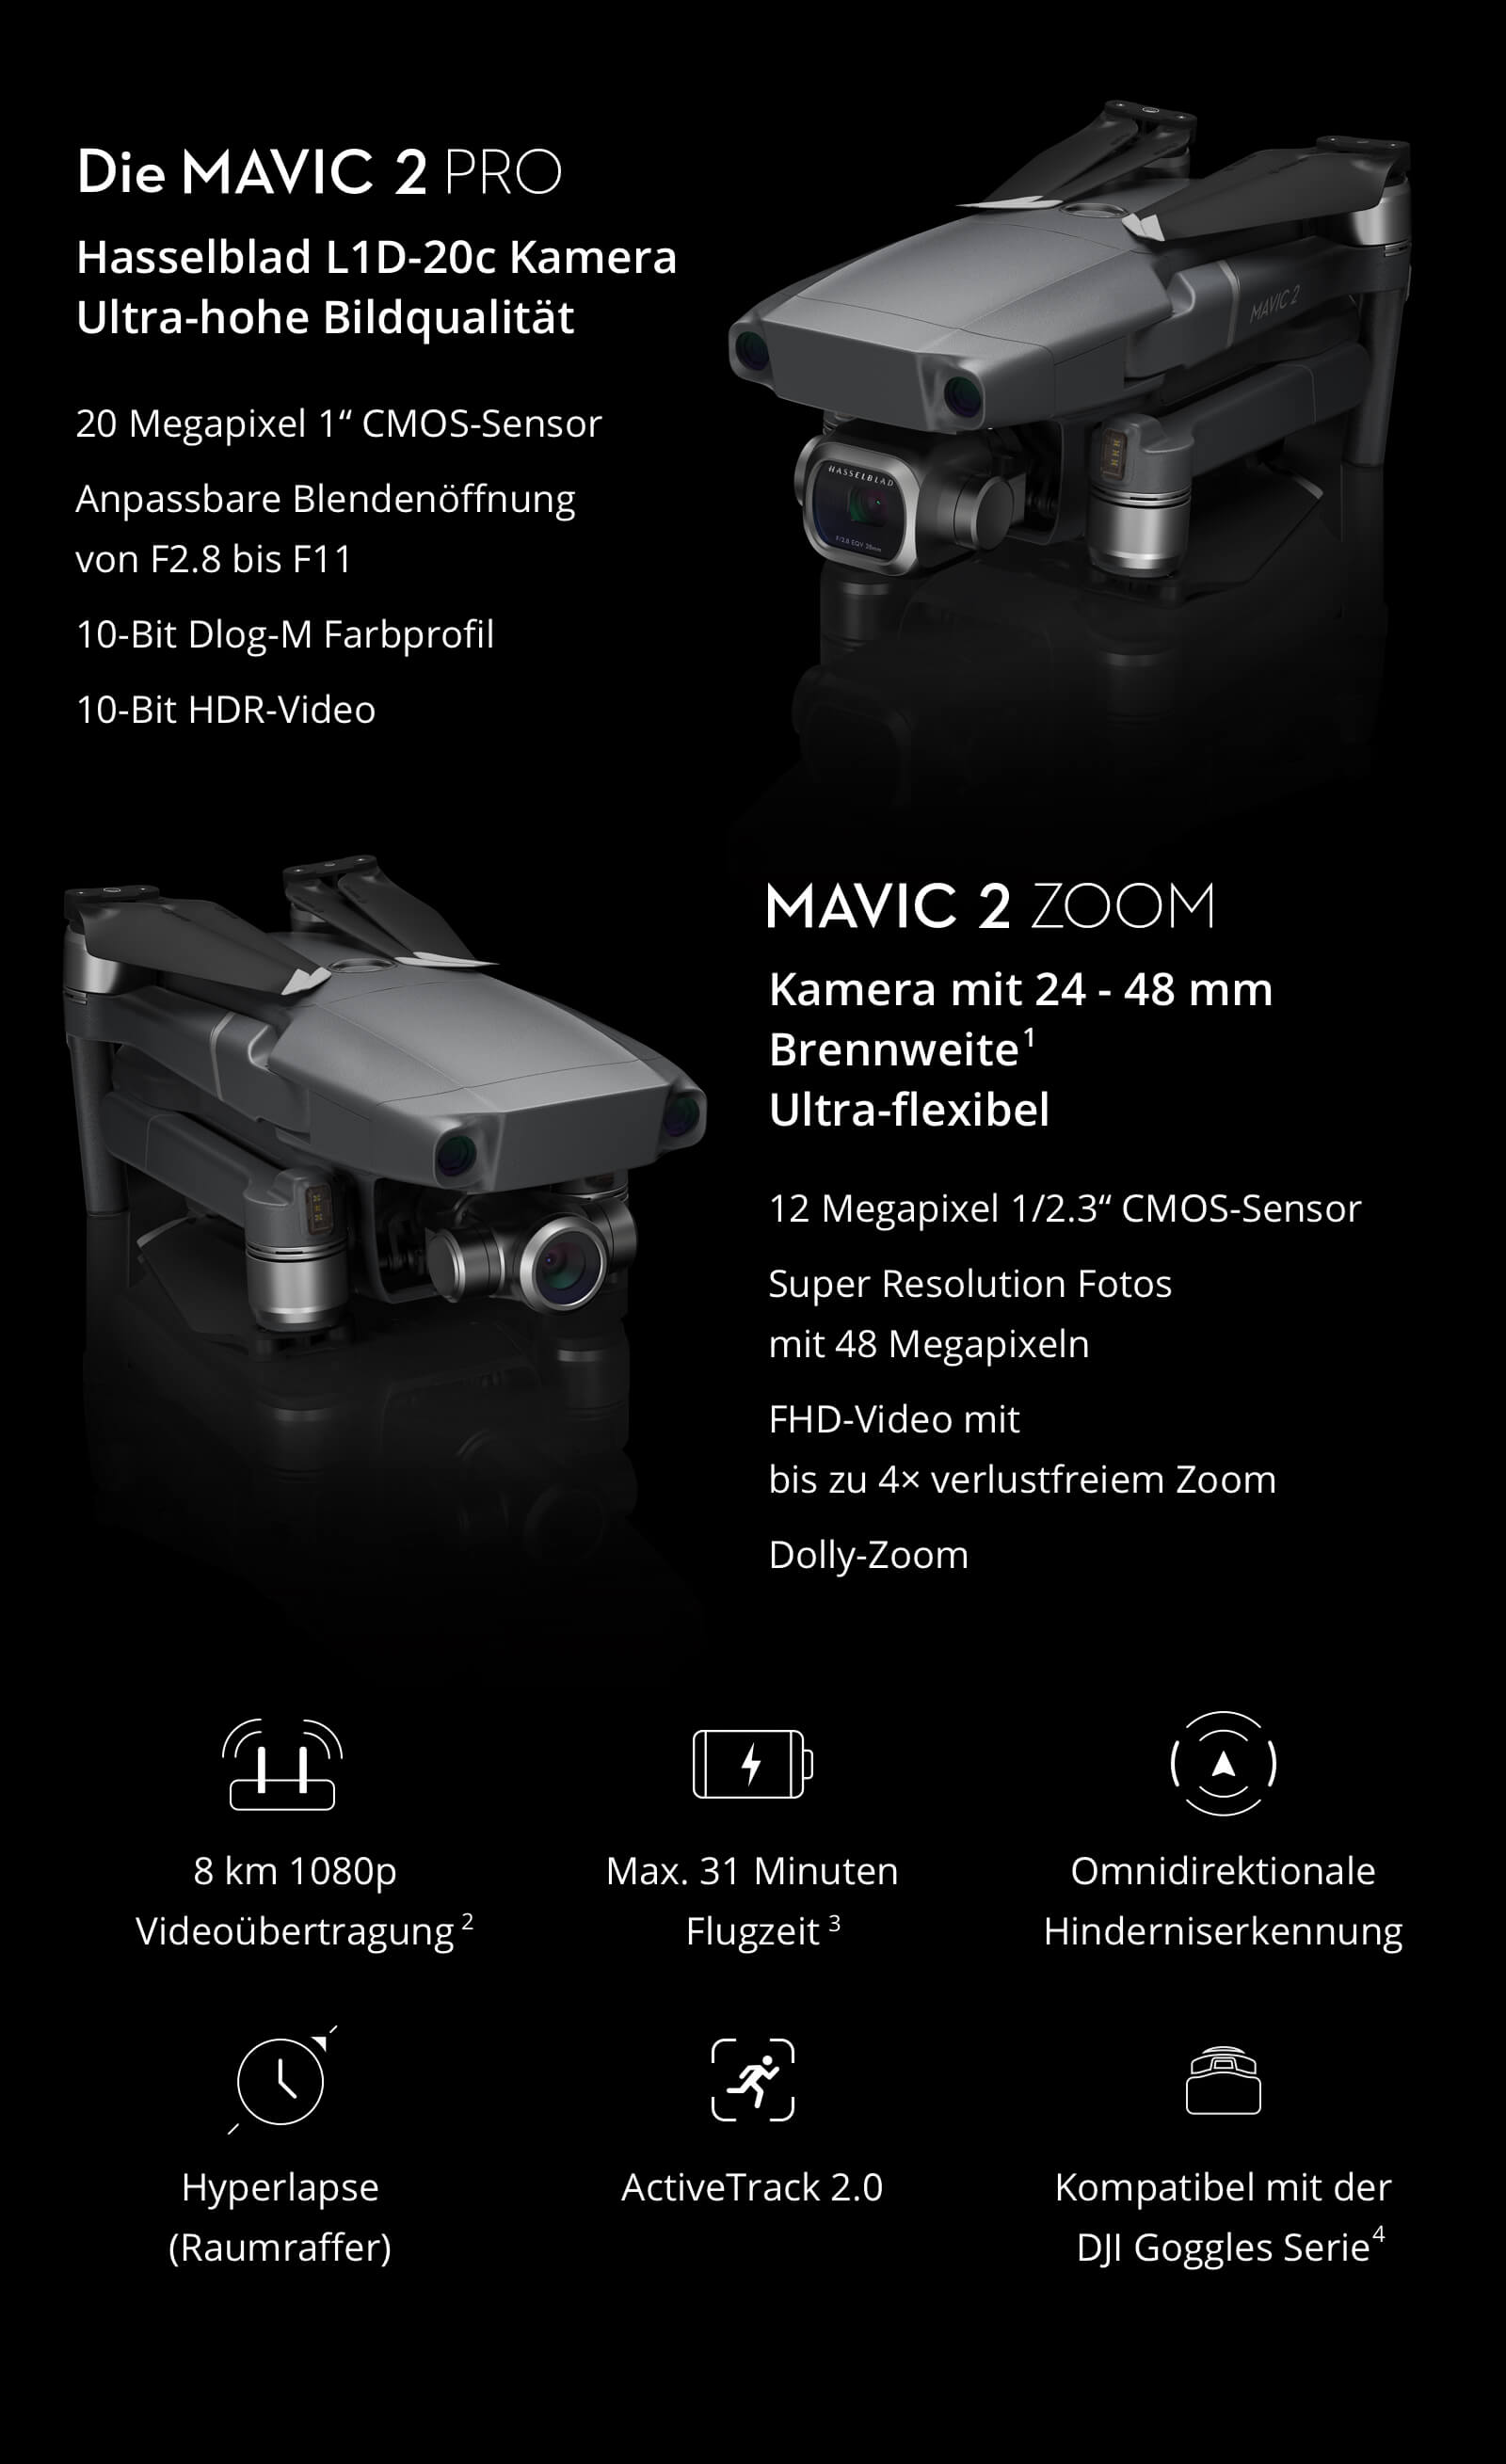 dji-mavic-2-inlay-3